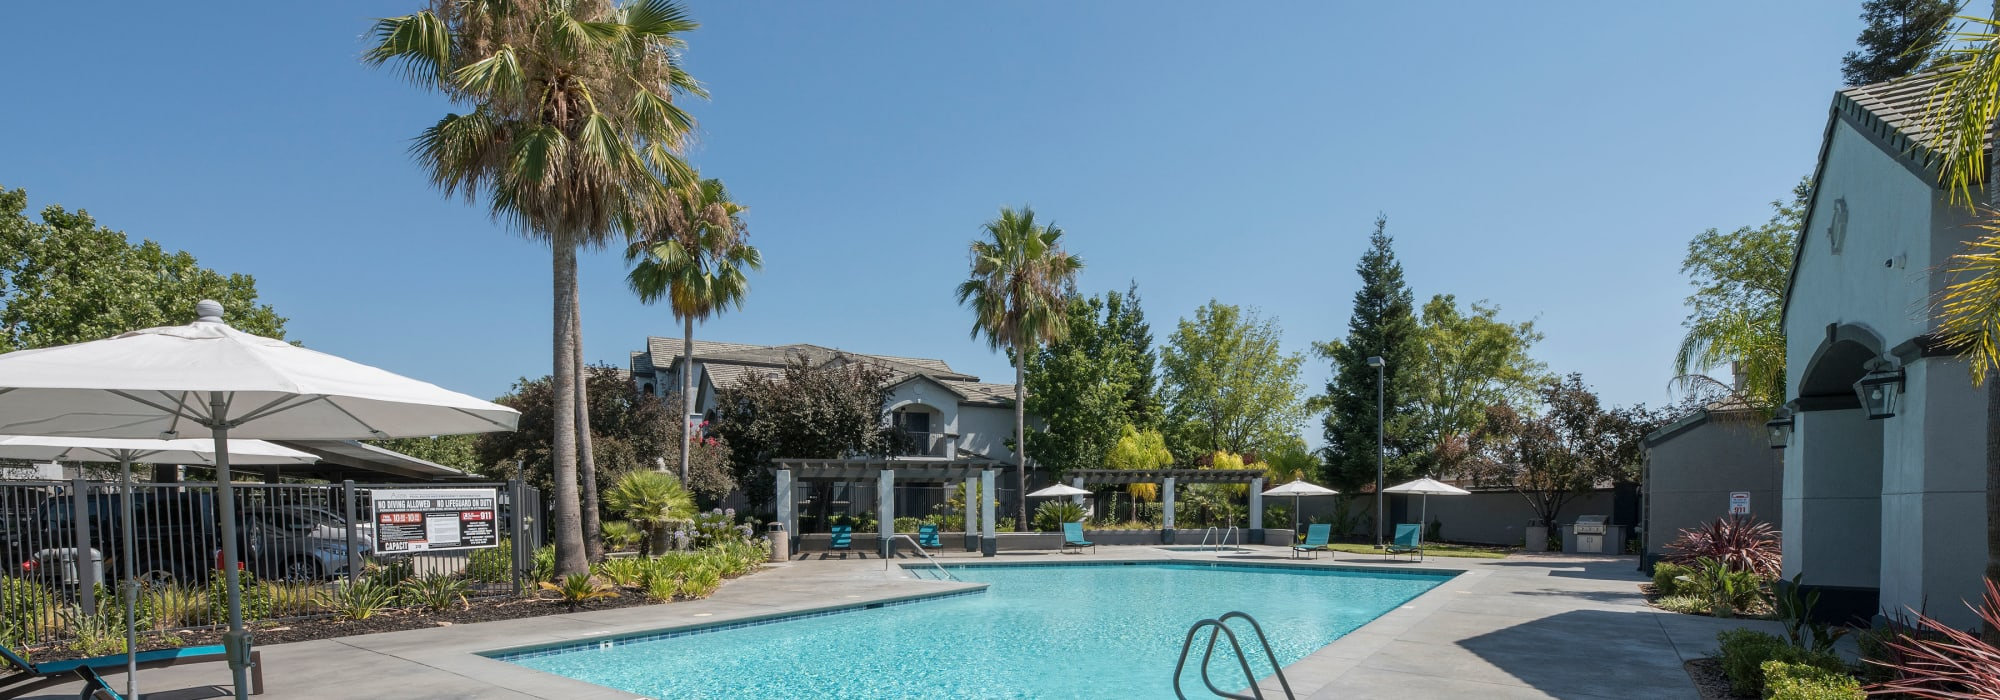 Photos of Avion Apartments in Rancho Cordova, California